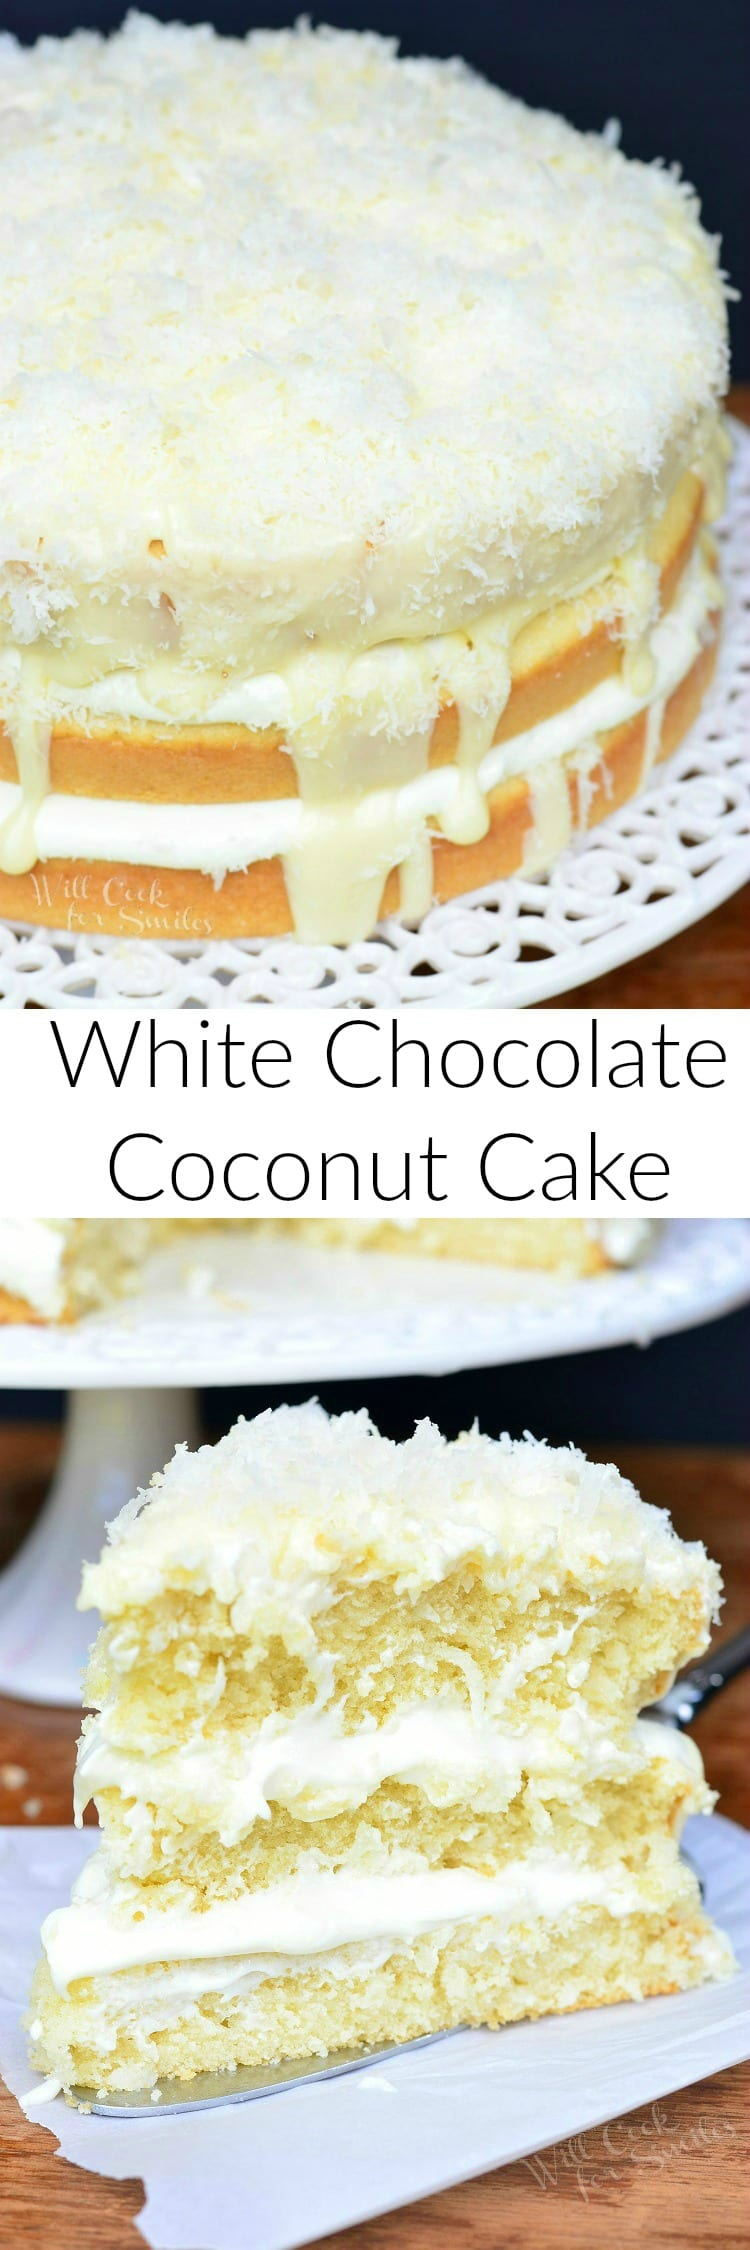 Chocolate Cake Recipe With White Chocolate Icing